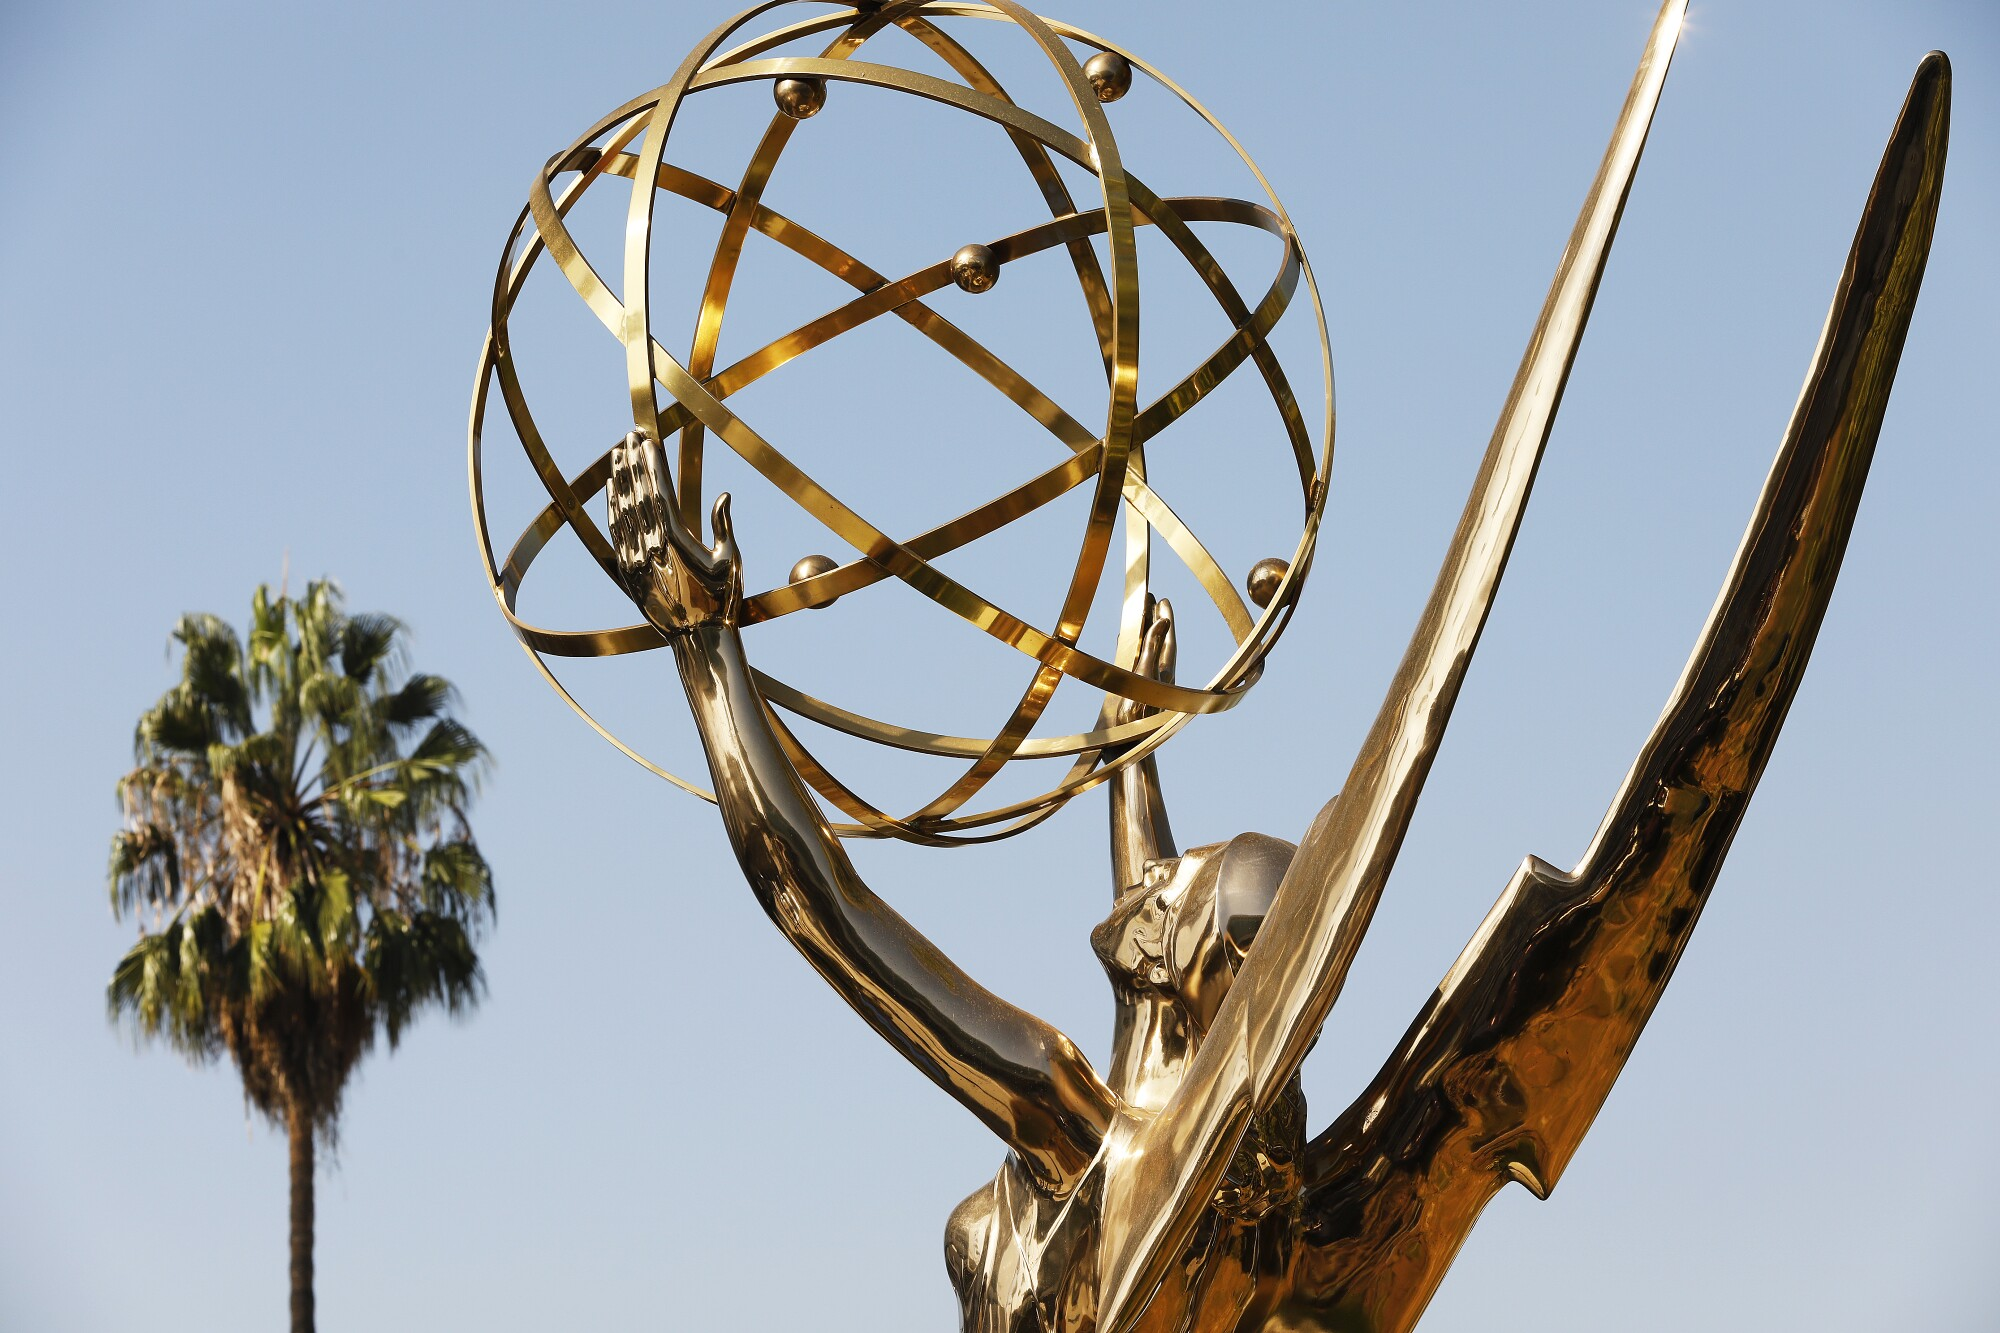 A palm tree and Emmy Awards statue